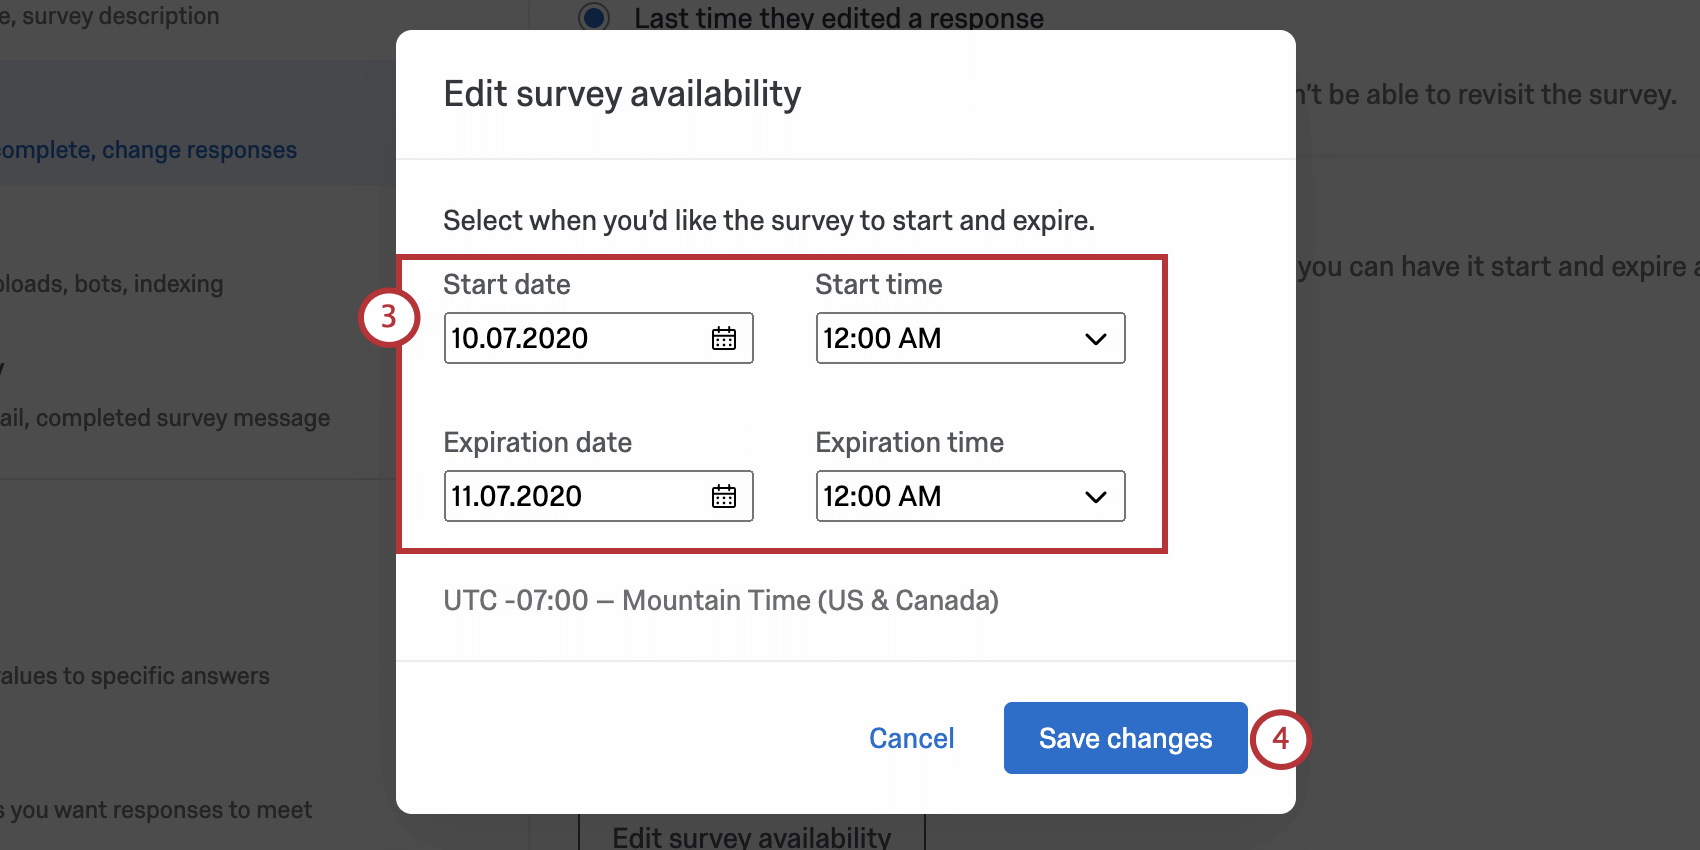 New window opens where you can enter the time range the survey should be available for